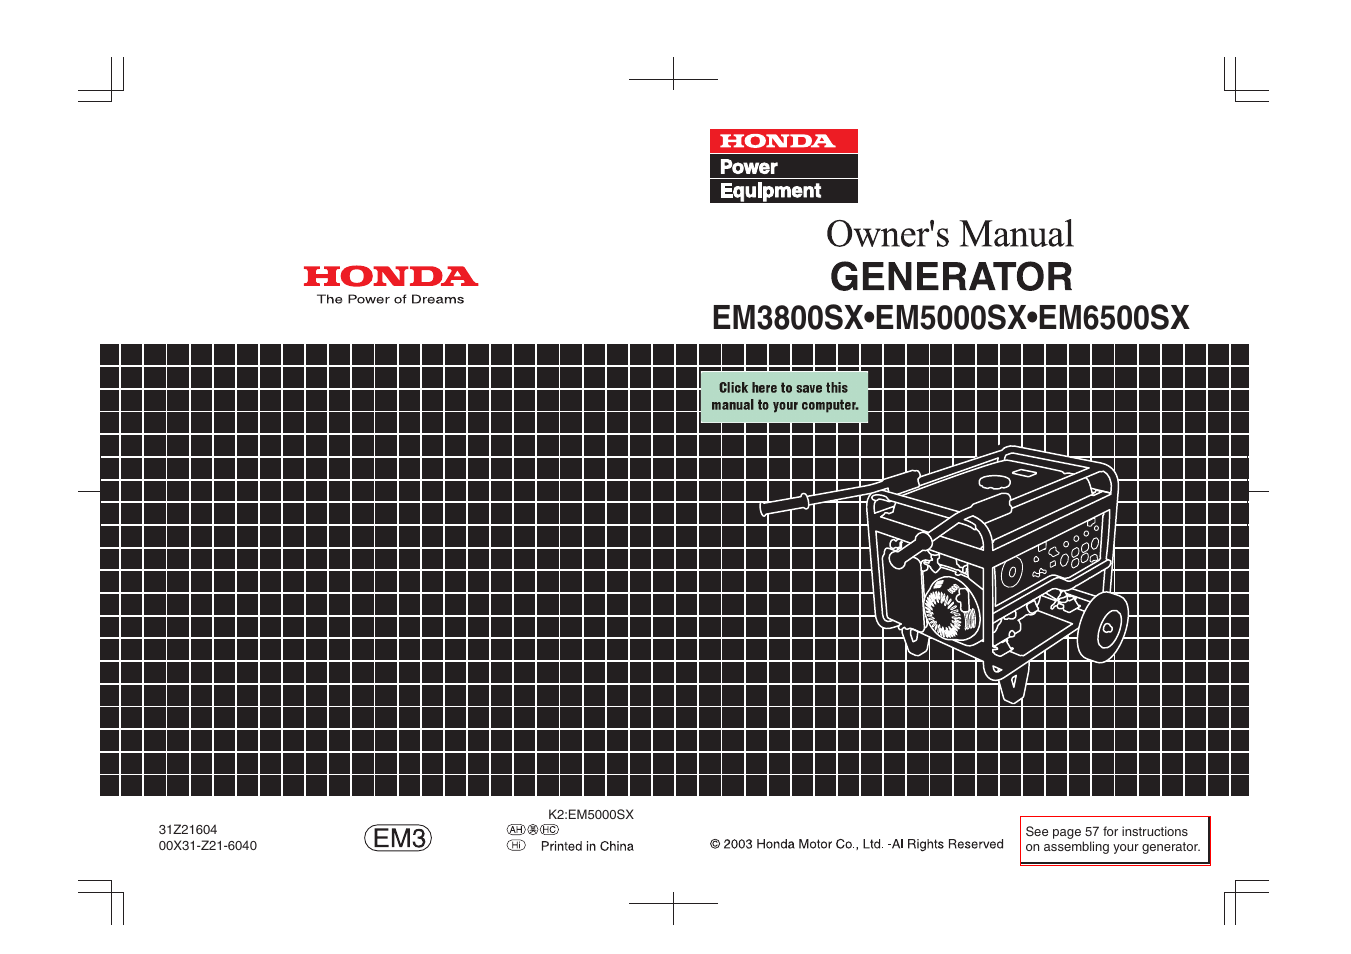 honda em3800sx user manual 75 pages also for em6500sx em5000sx rh manualsdir com